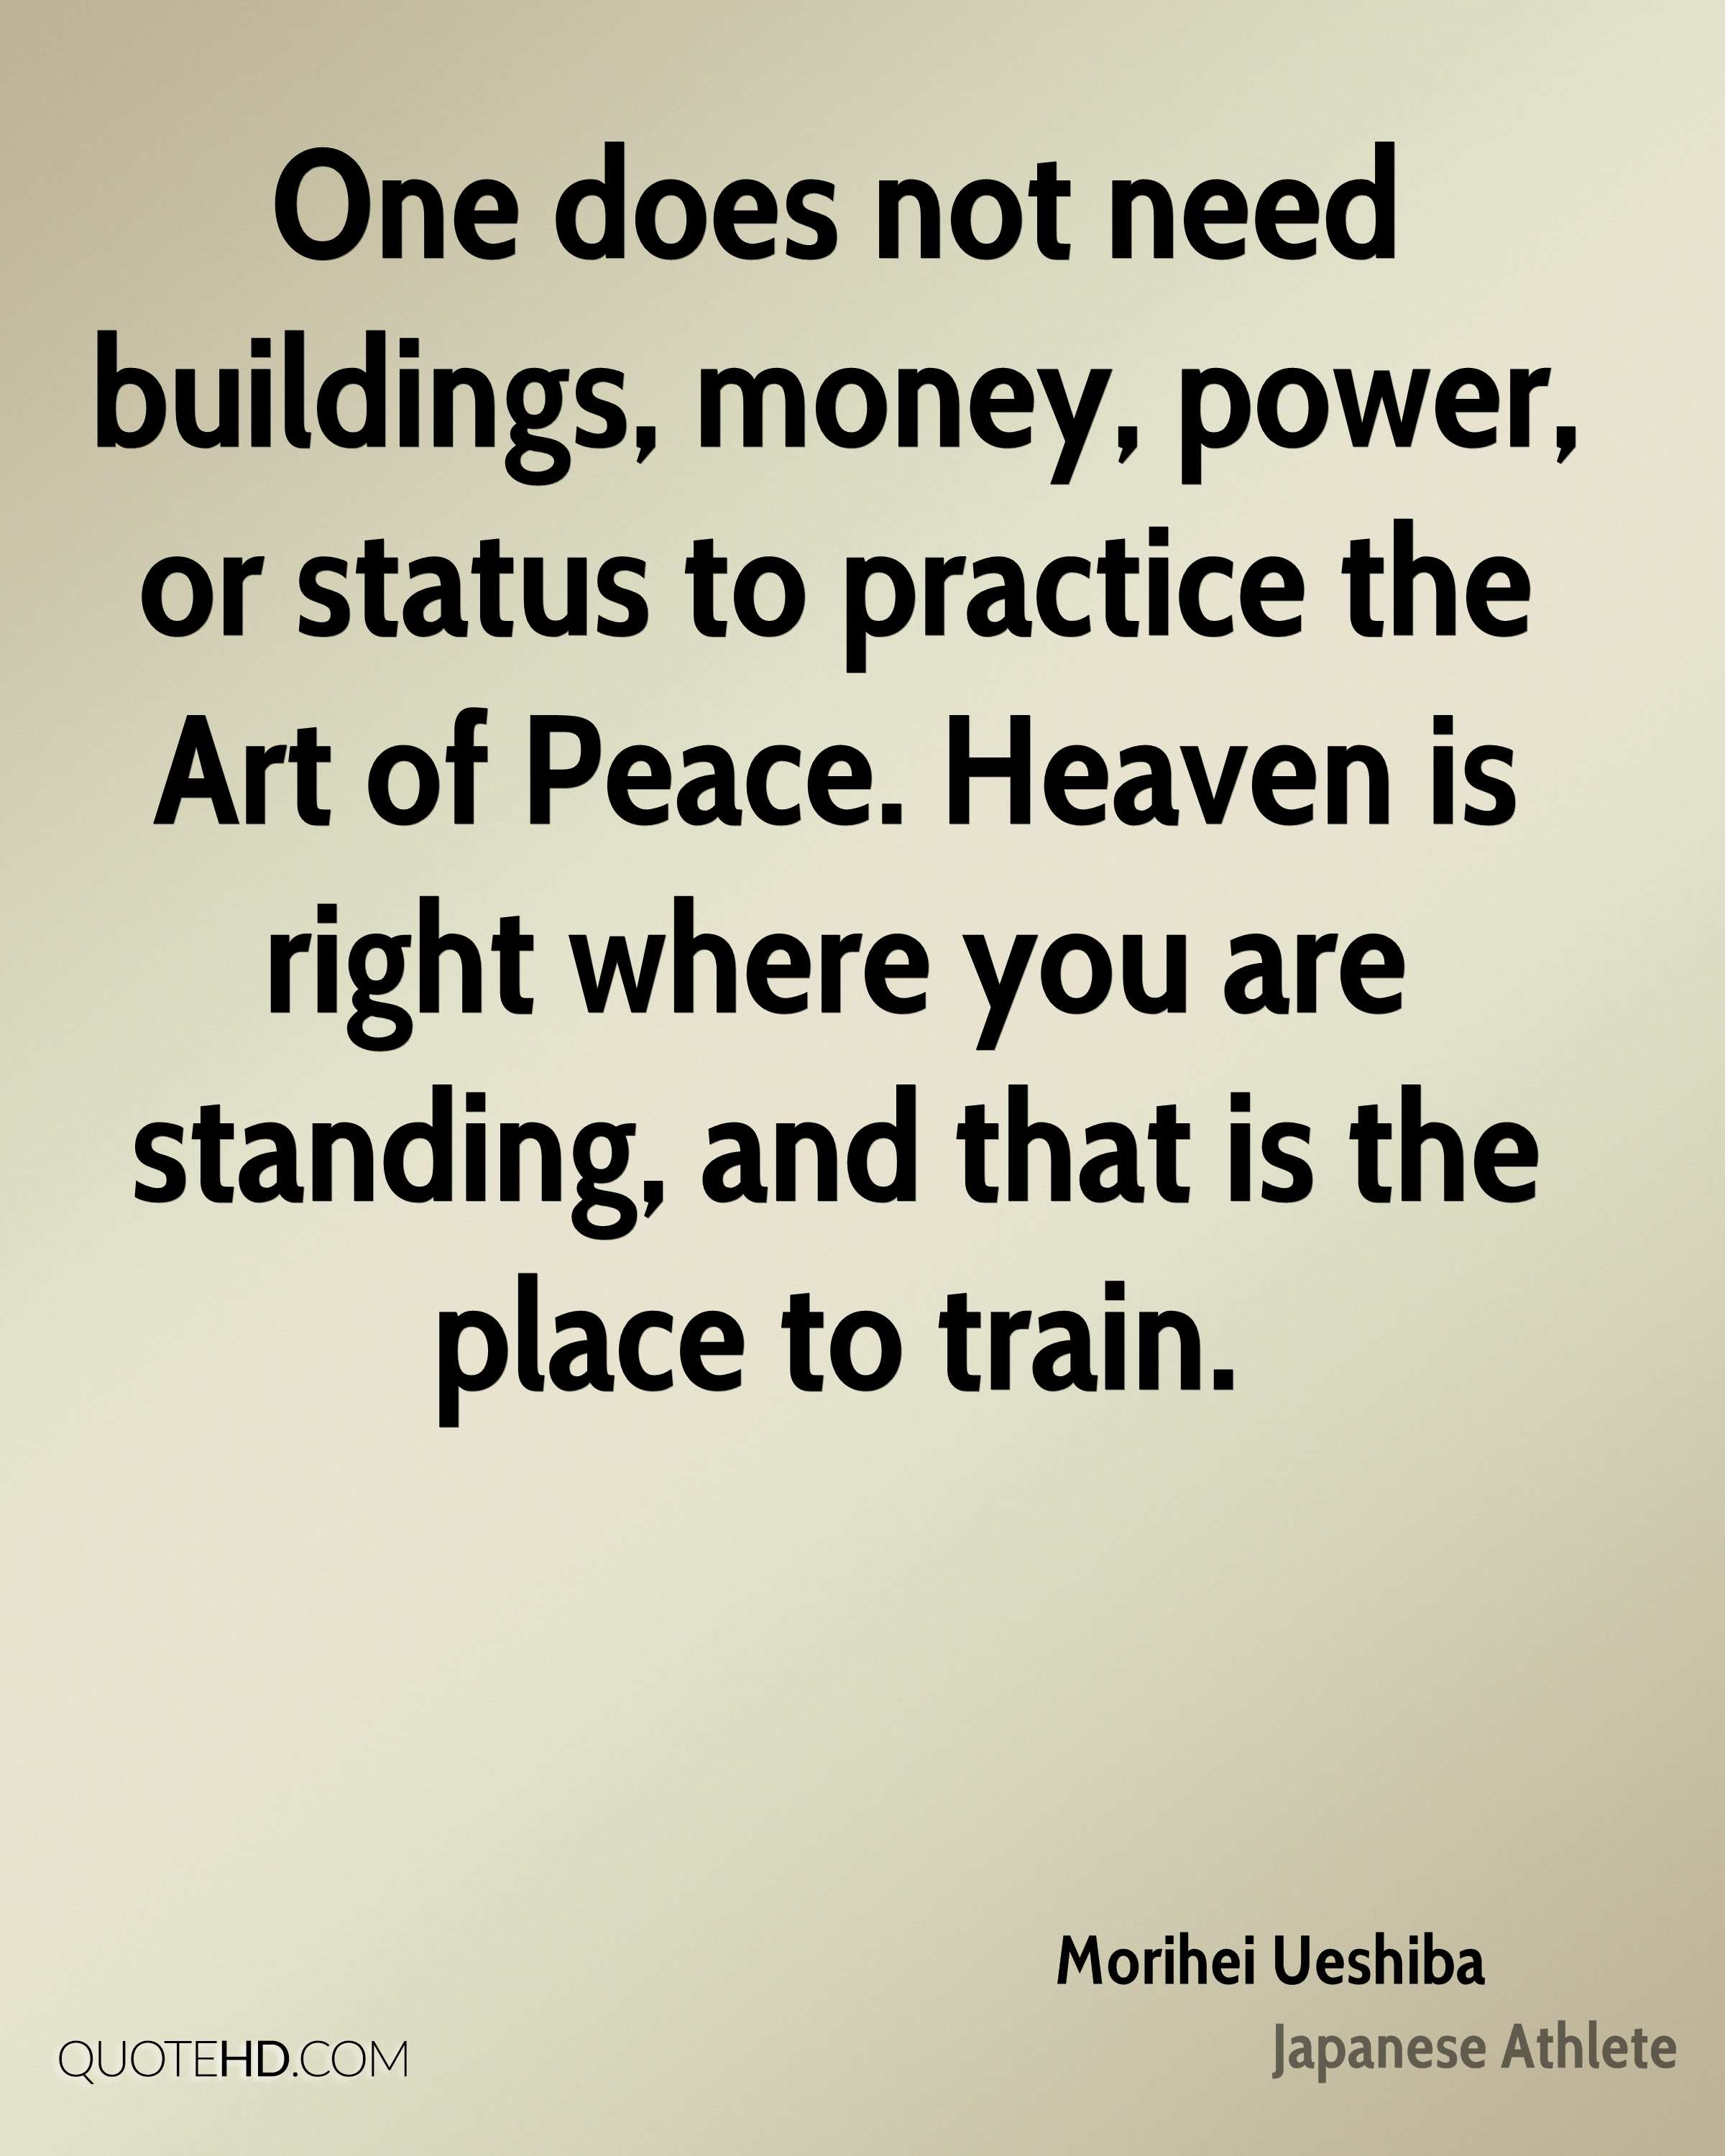 One does not need buildings, money, power, or status to practice the Art of Peace. Heaven is right where you are standing, and that is the place to train.